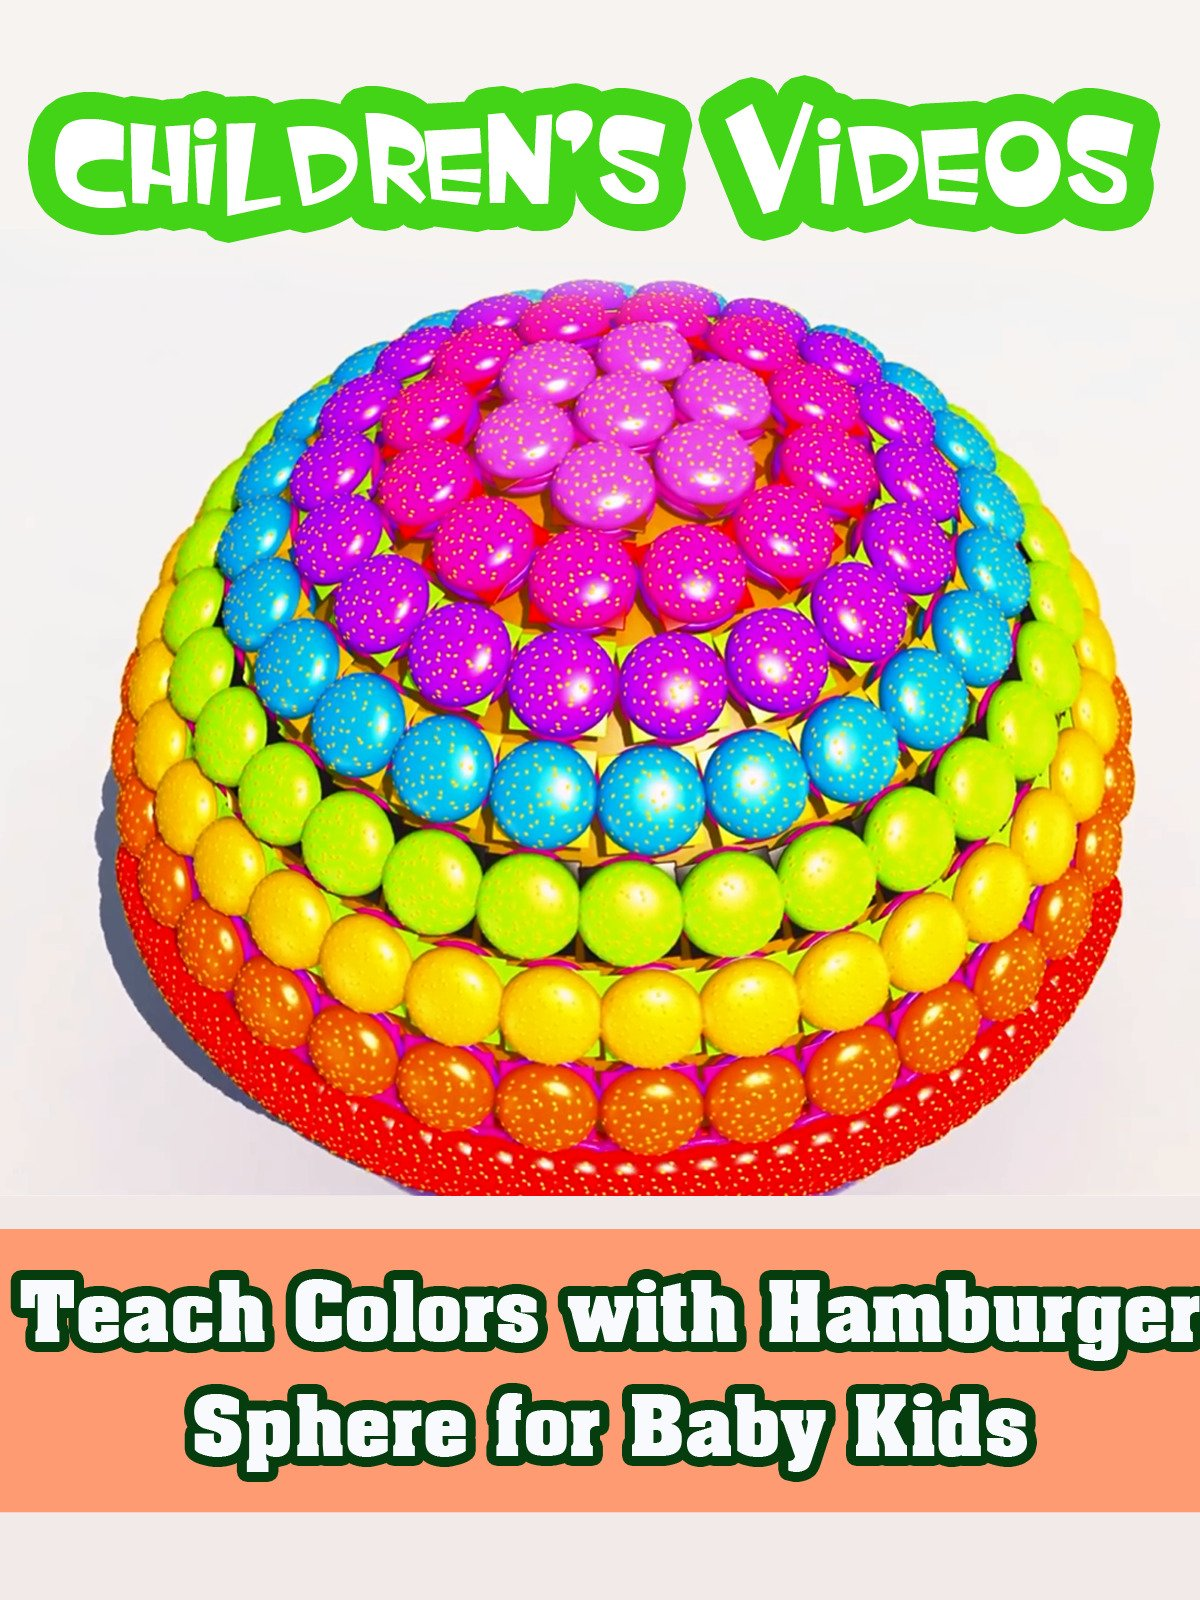 Teach Colors with Hamburger Sphere for Baby Kids